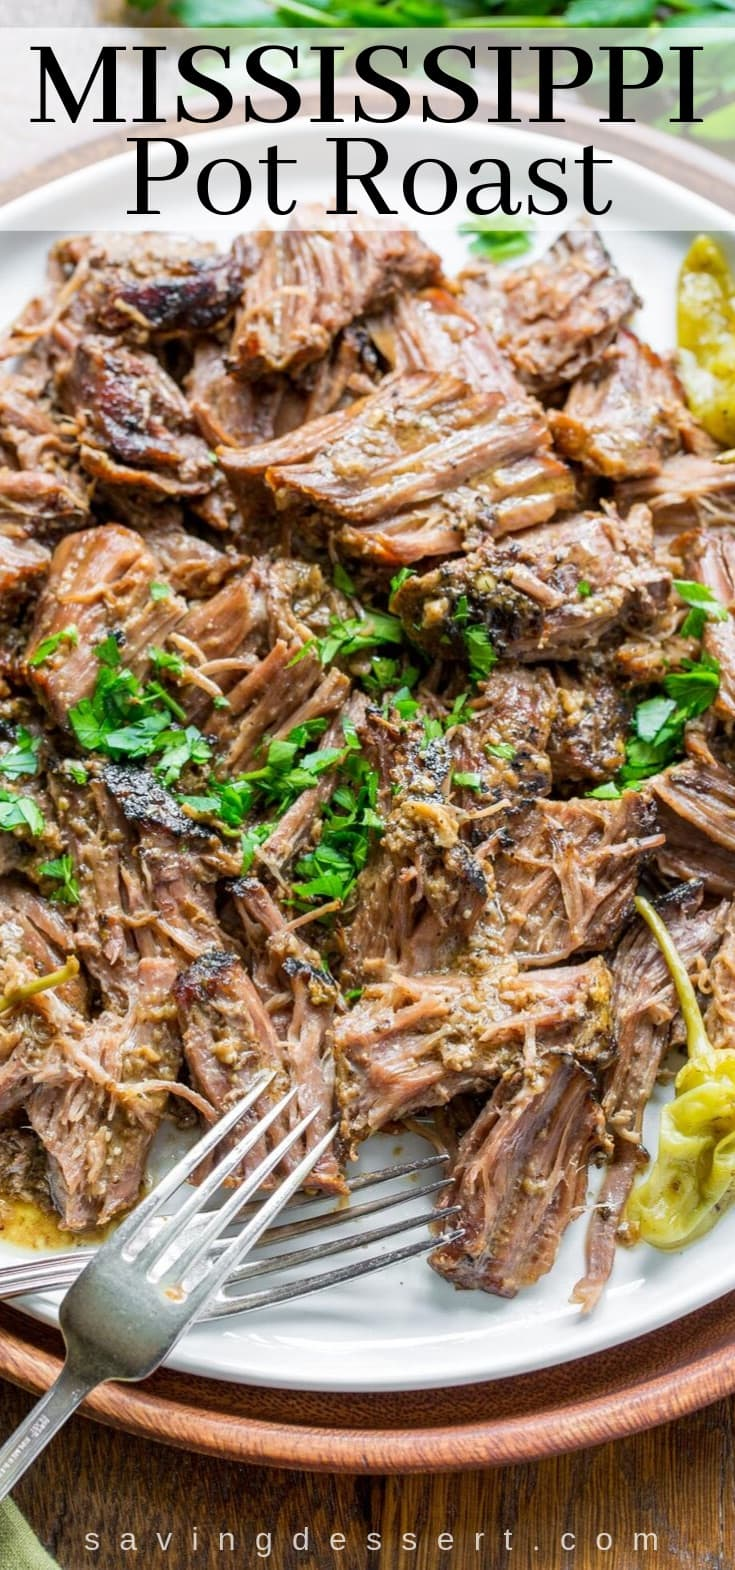 A platter with shredded Mississippi Pot Roast with peppers garnished with parsley